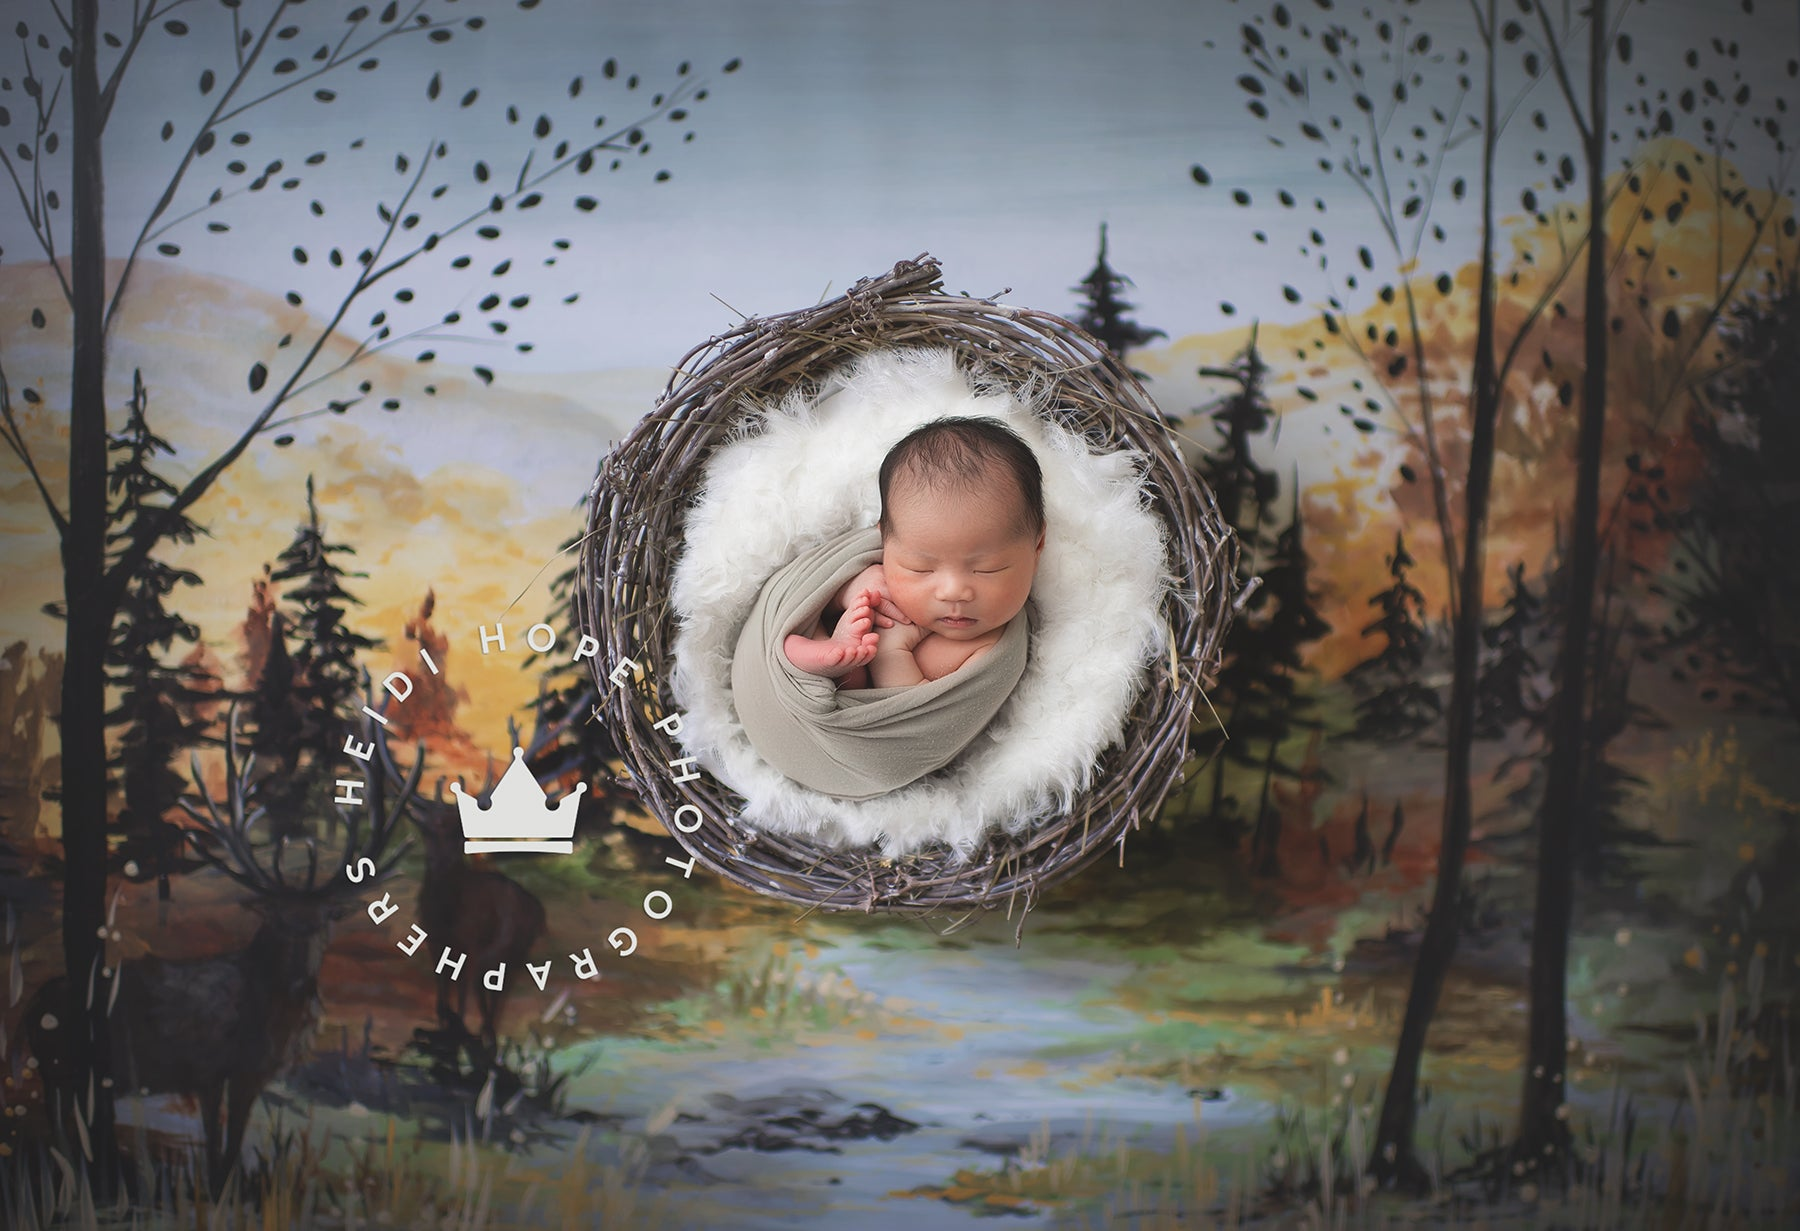 AOFOTO 3x5ft Baby Photography Studio Backdrops Toddler Photo Shoot Background Dreamy Forest Squirrel Tree Leaves Plants Grass Path Child Infant Kid Artistic Portrait Fantasy Scene Video Props Digital